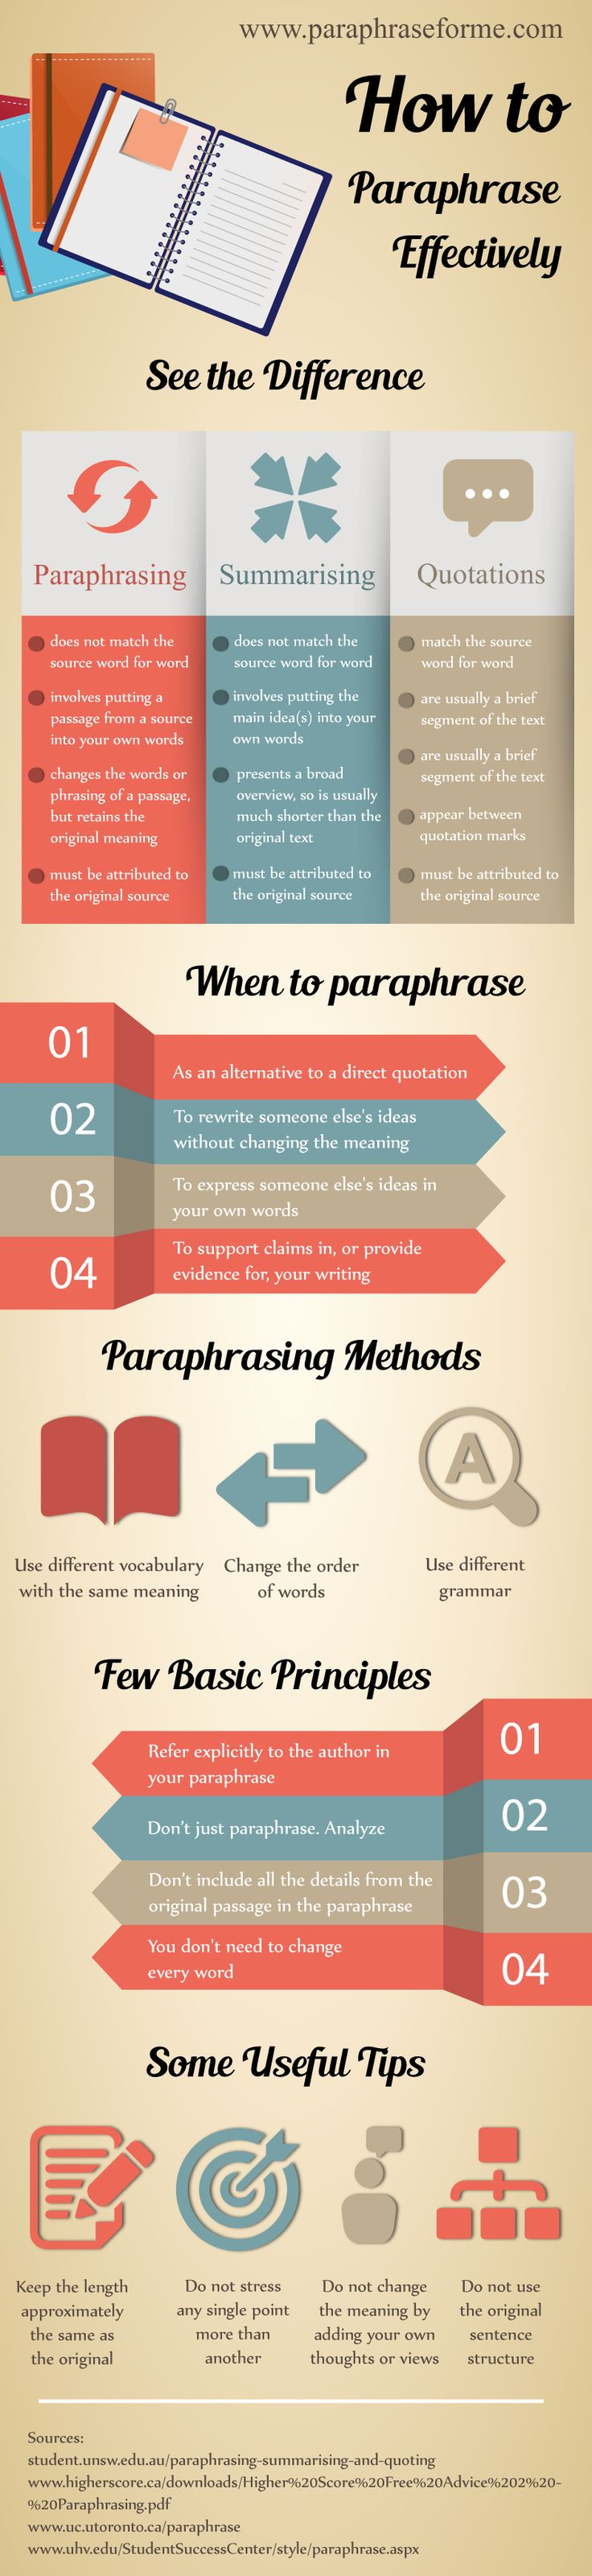 best ideas about apa essay format apa format this link explains how to paraphrase effectively so plagiarism is avoided it will be very useful to you when we write your english papers